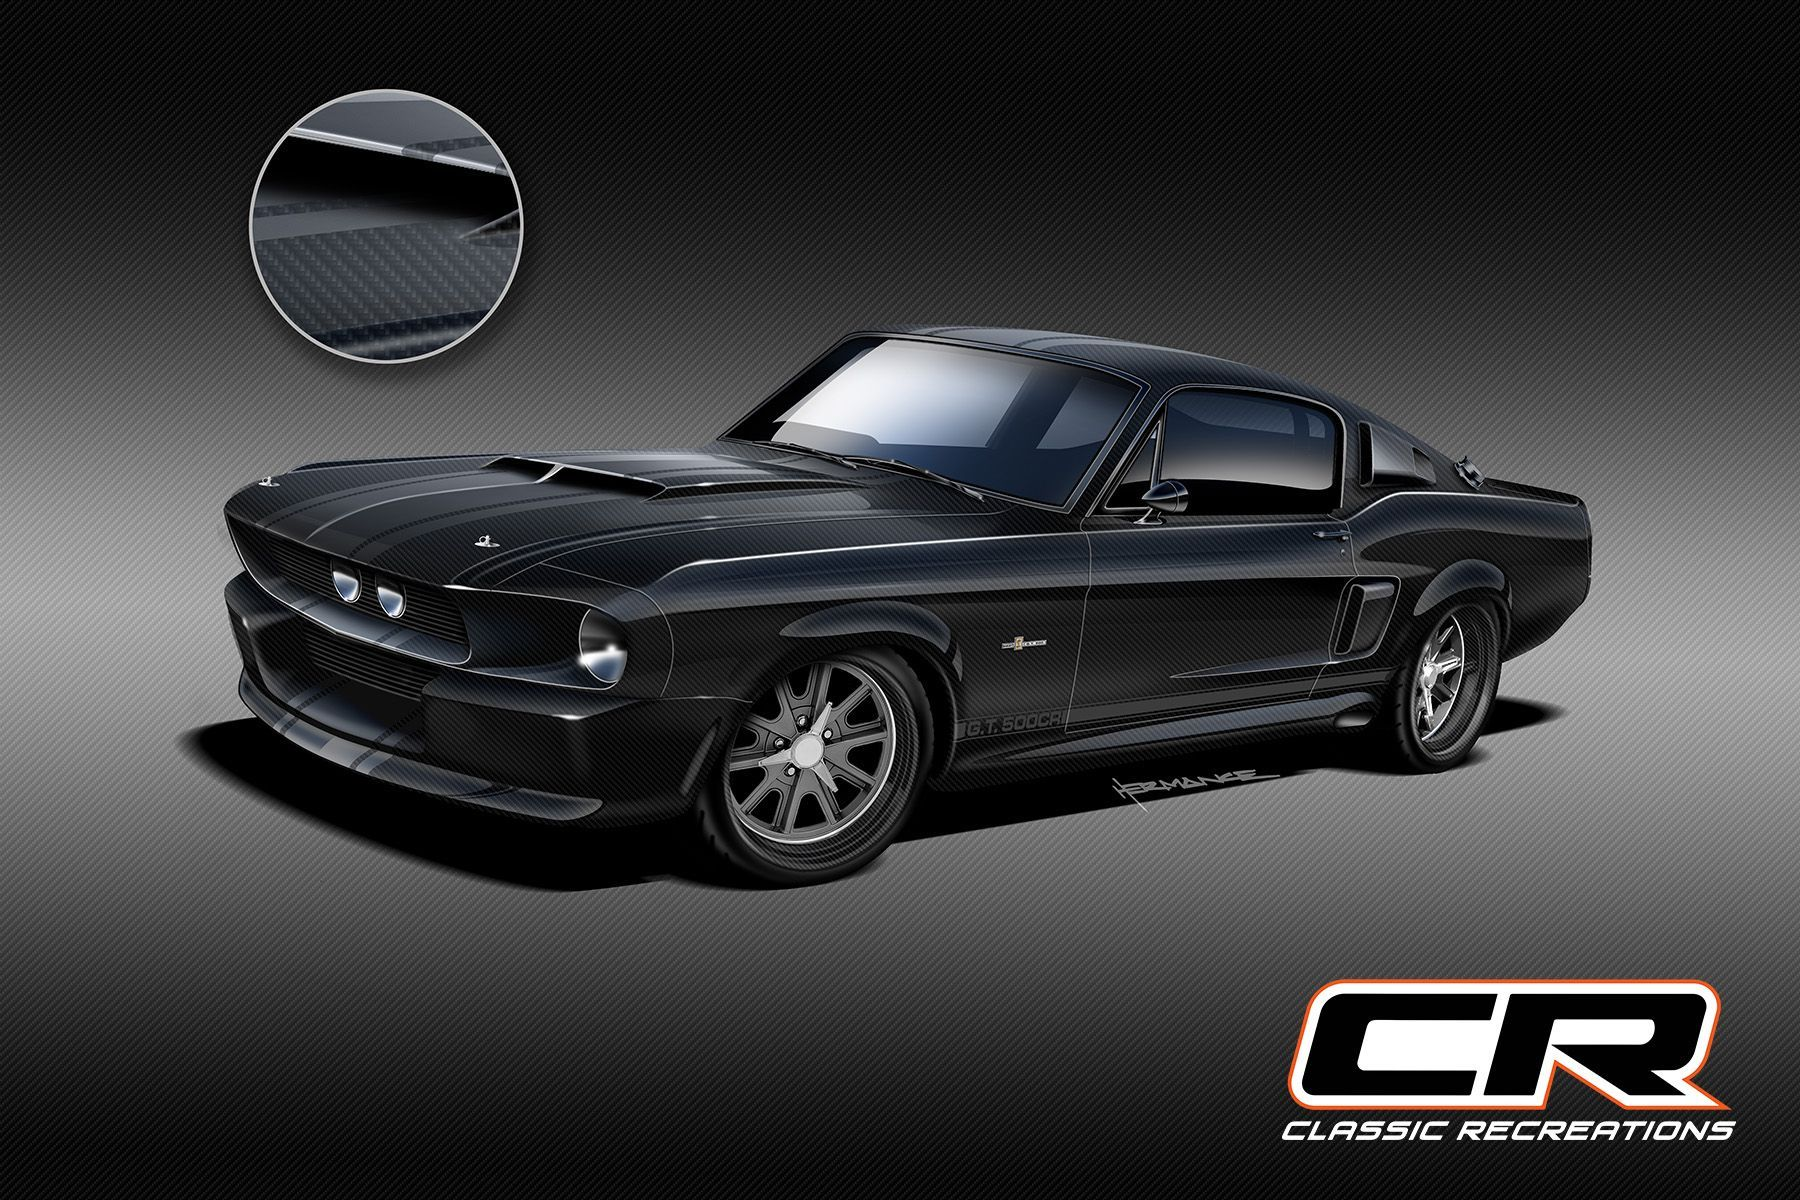 """<img src=""""classic-recreations-shelby.jpeg"""" alt=""""An all-new carbon fiber-bodied 1967 Shelby GT500CR by Classic Recreations and SpeedKore"""">"""